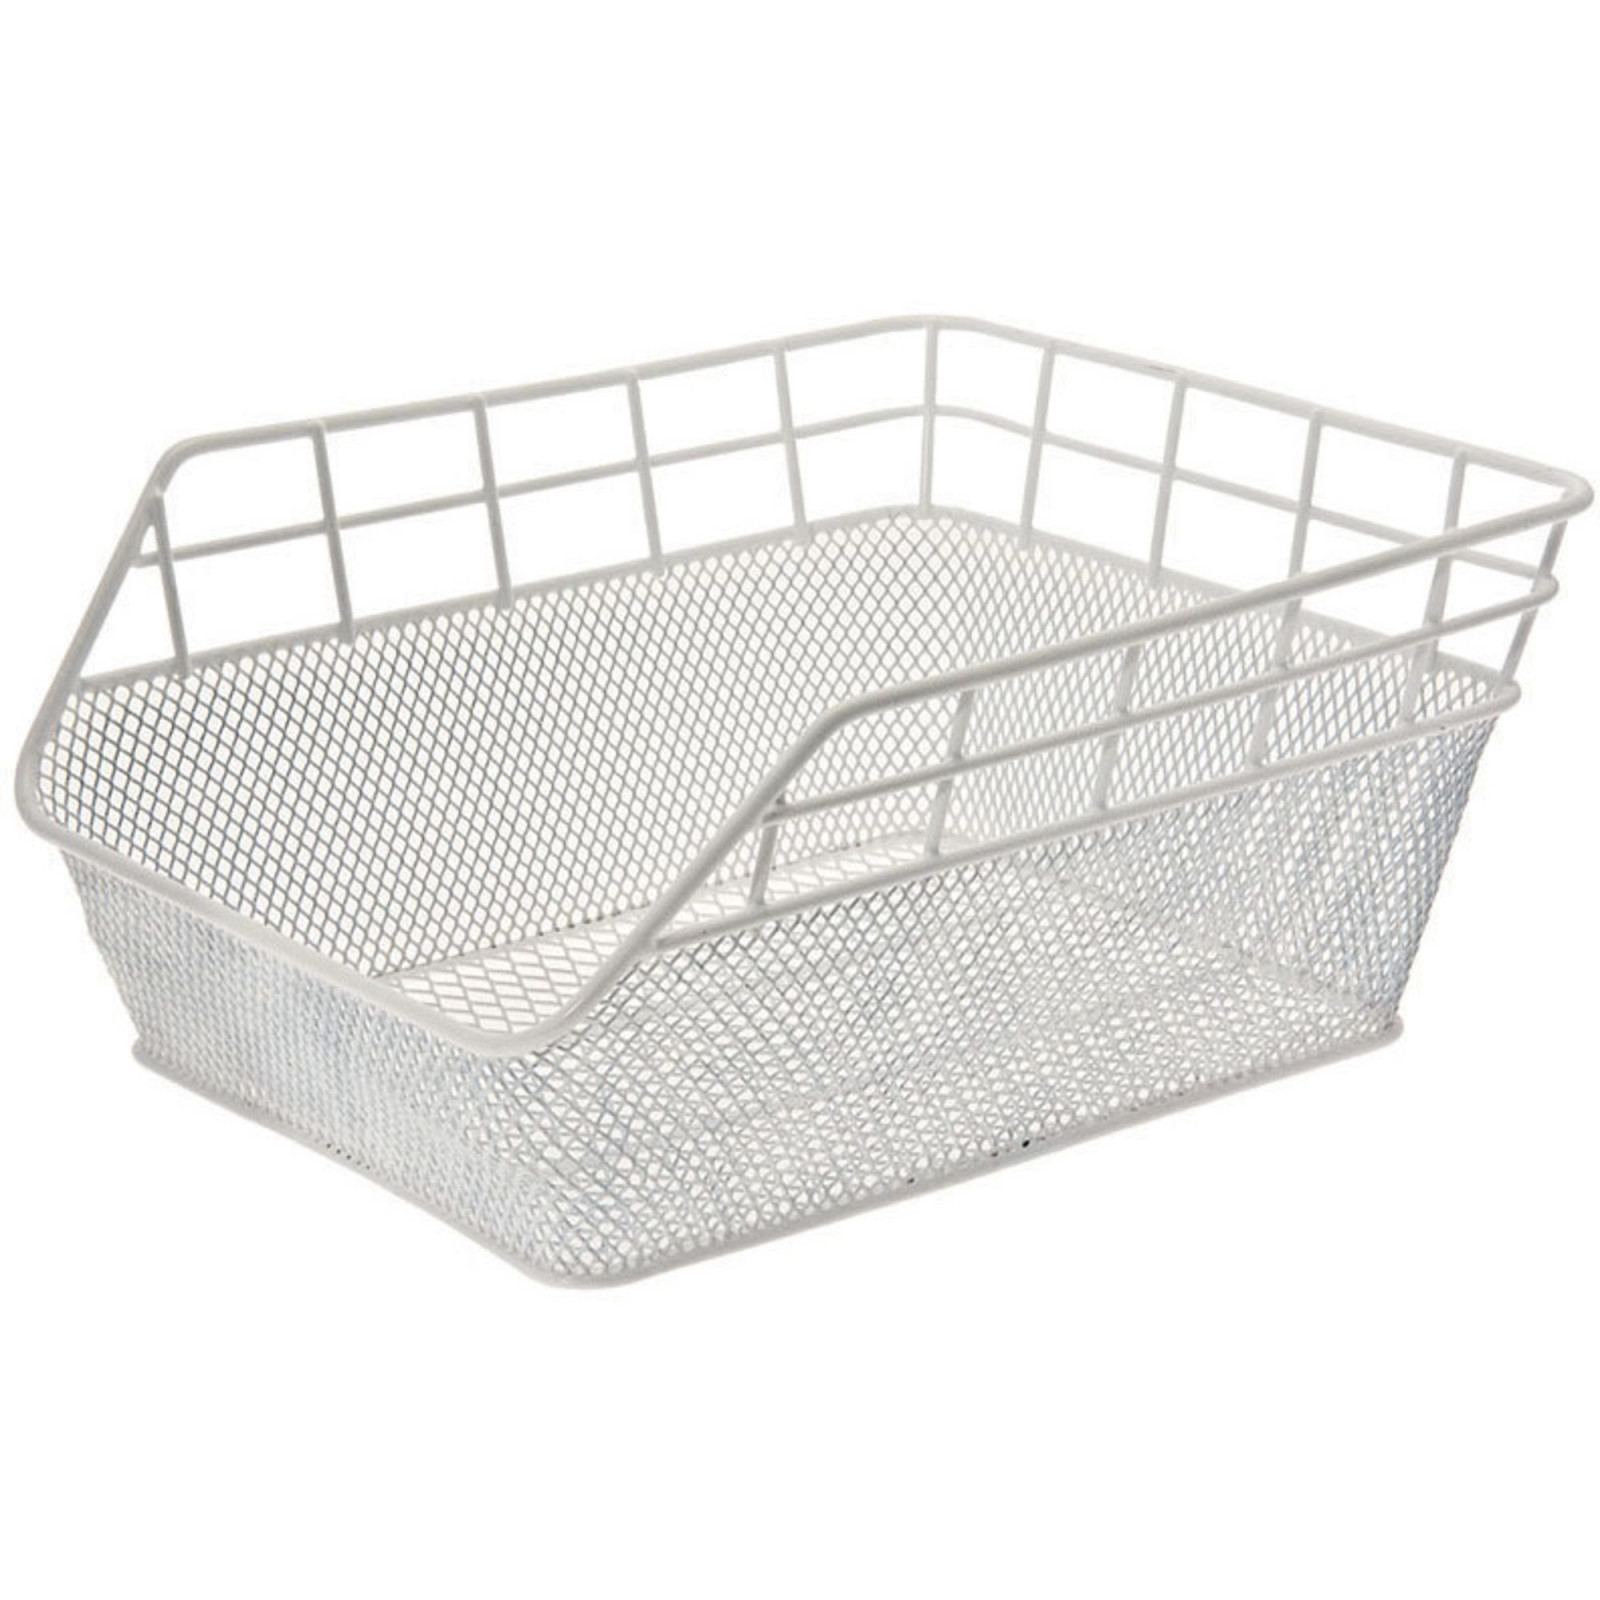 FANTASY REAR BICYCLE BASKET – IN COLOR WHITE